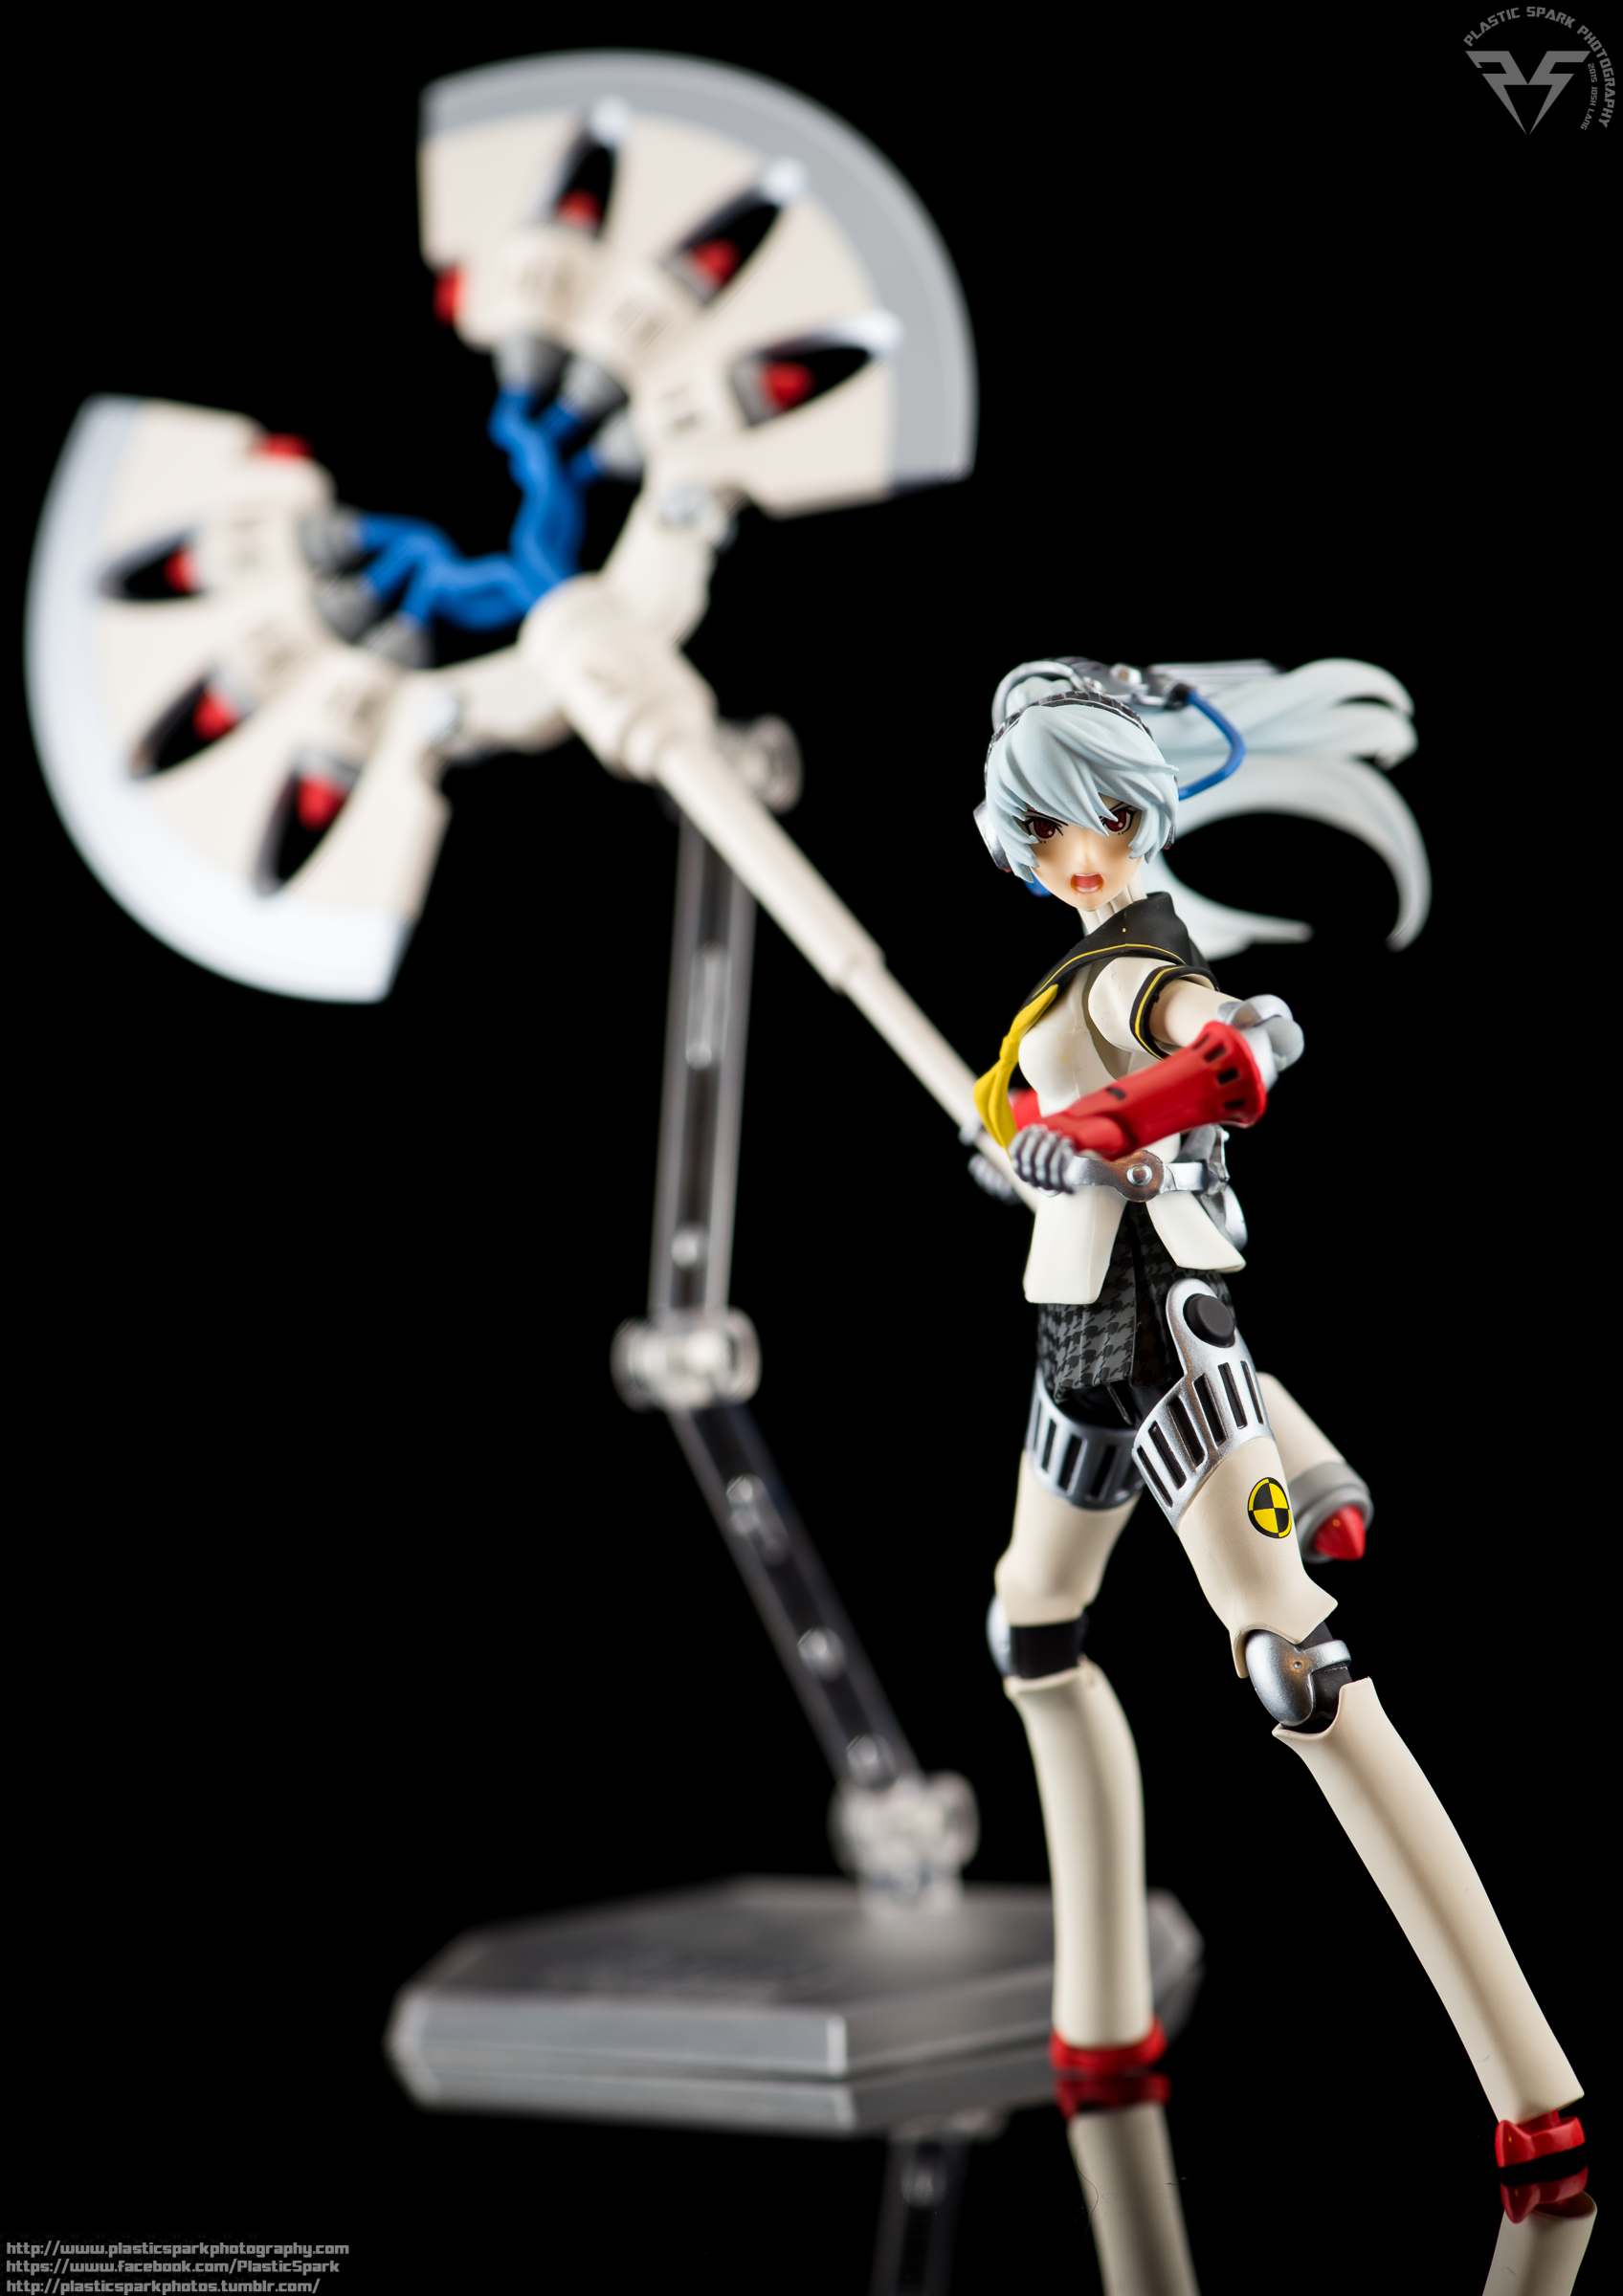 Figma-Labrys-(3-of-33).png